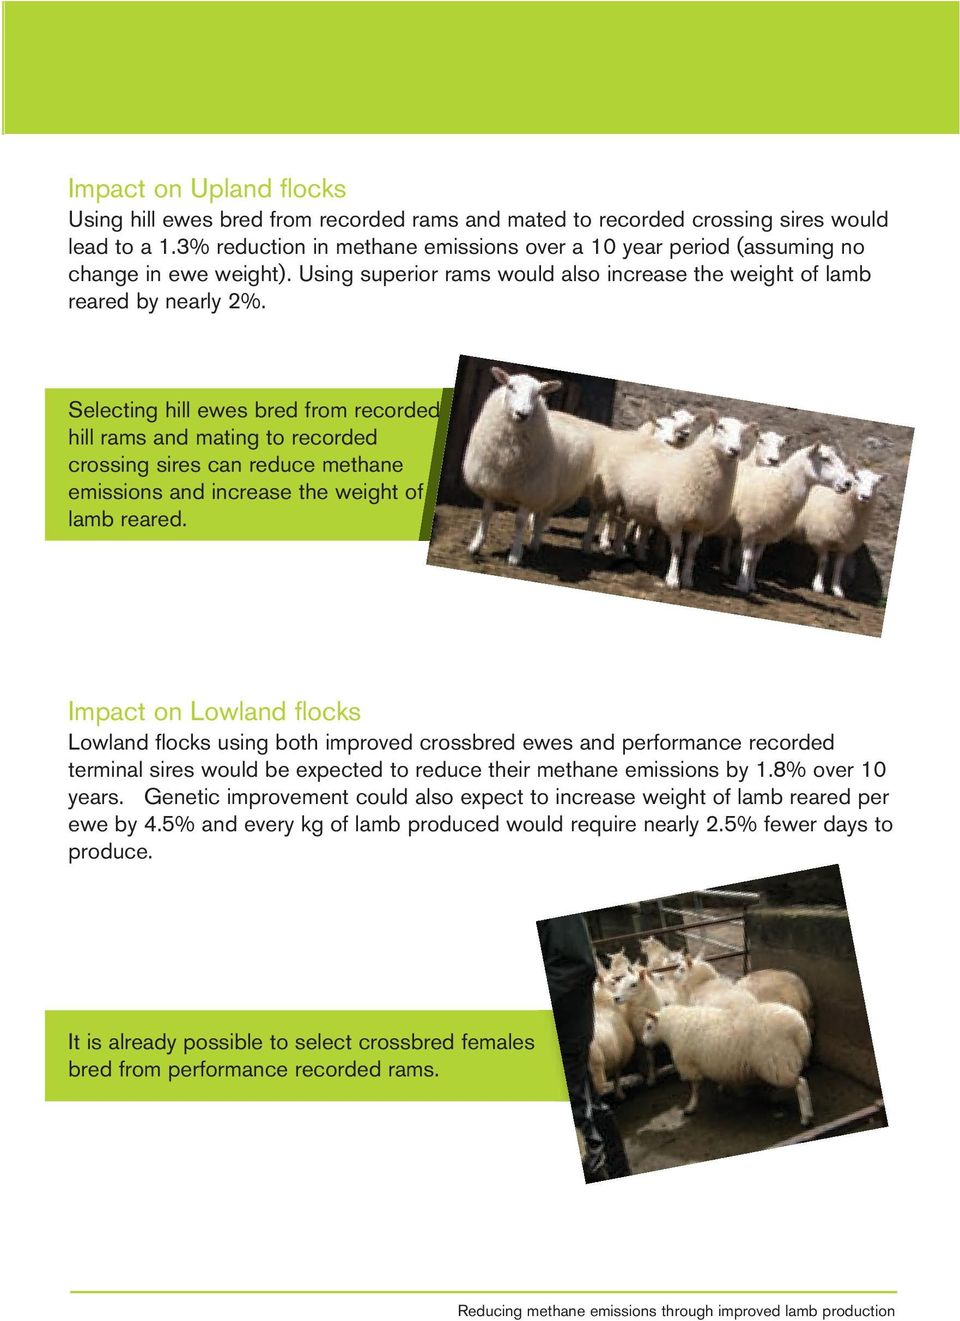 Selecting hill ewes bred from recorded hill rams and mating to recorded crossing sires can reduce methane emissions and increase the weight of lamb reared.